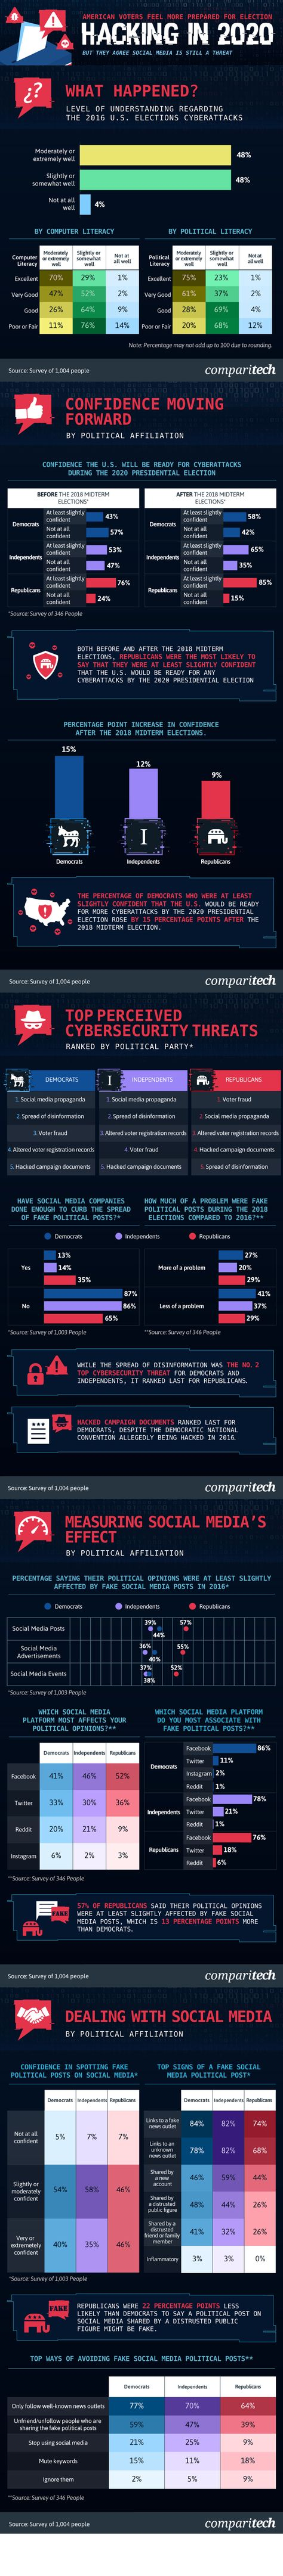 Social Media and its Impacts on Democracy [Infographic]